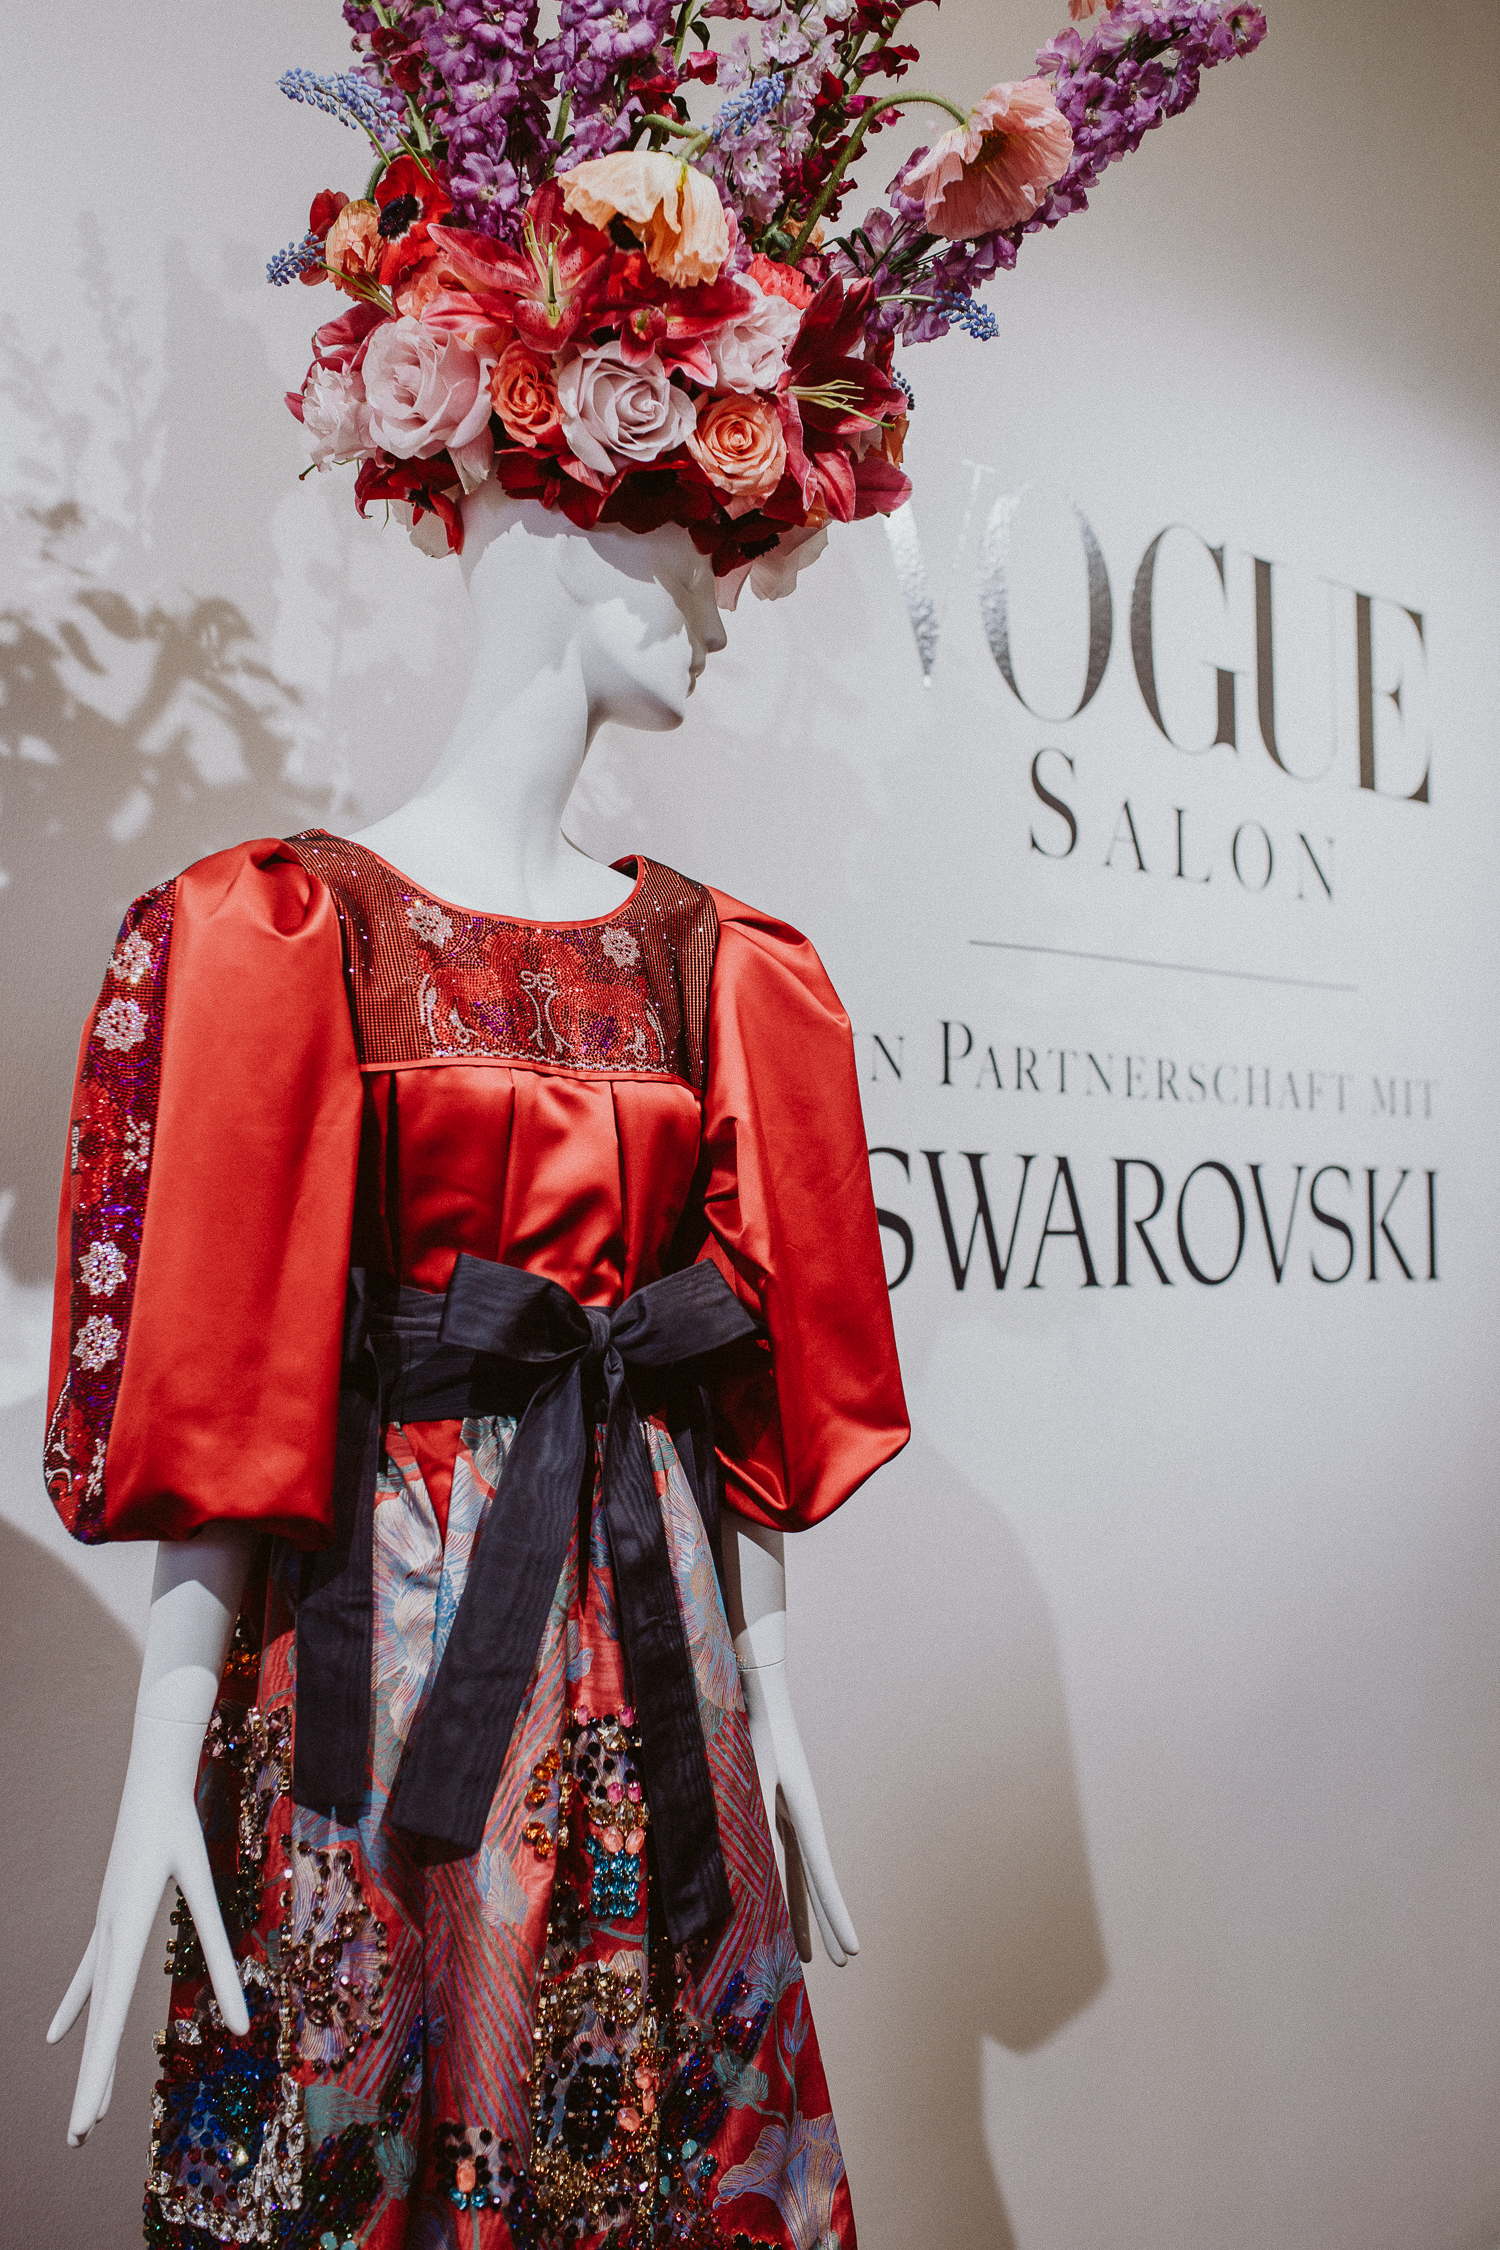 Vogue Salon Swarovski, Berlin Fashion Week | Bikinis & Passports